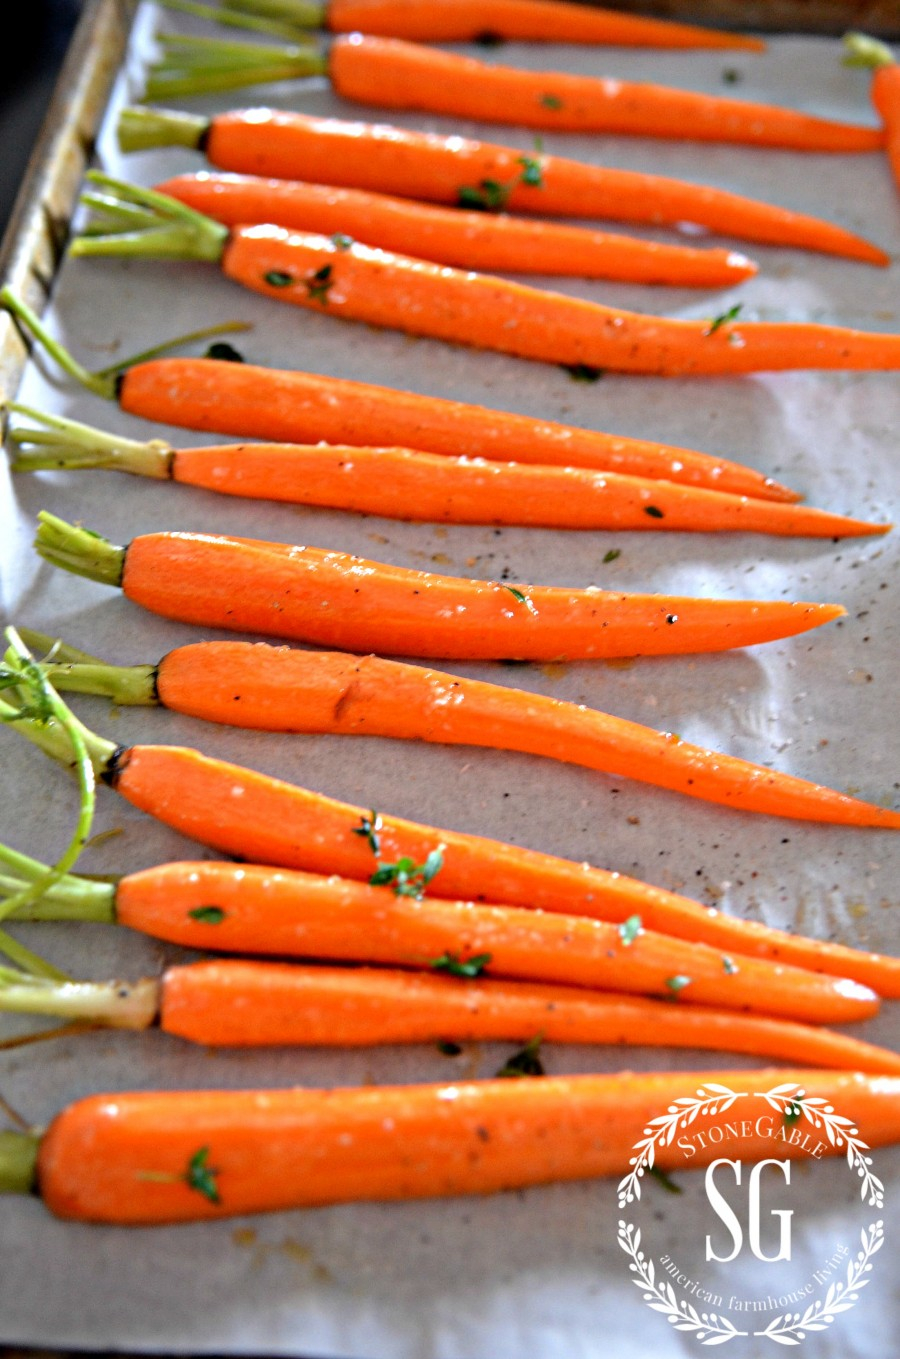 ROASTED ORGANIC CARROTS WITH THYME- sweet, scrumptious, filled with flavor-stonegableblog.com